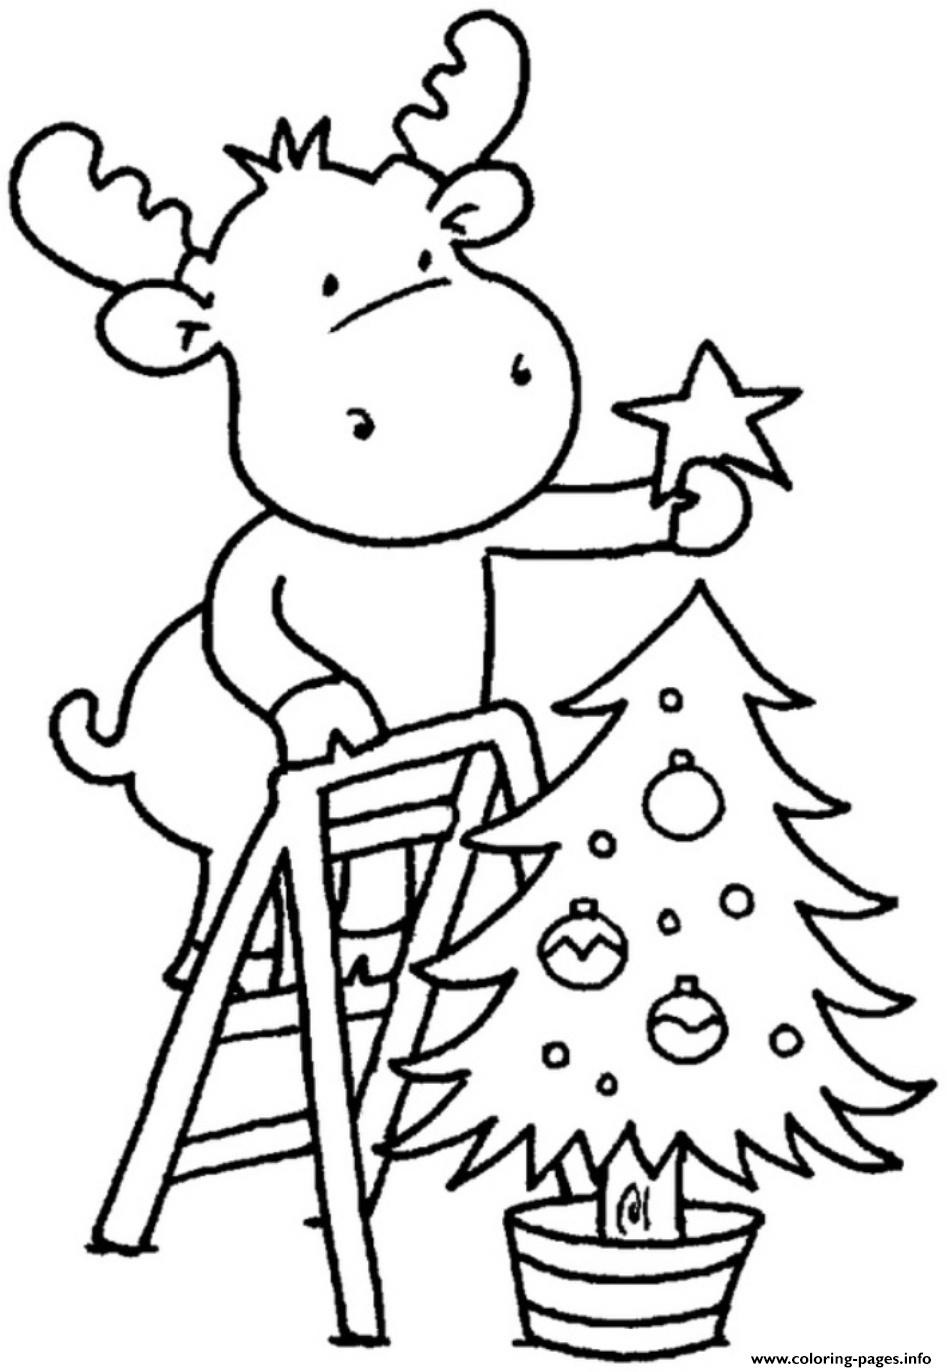 Free Christmas Coloring Sheets For Kids  Christmas Tree For Children Coloring Pages Printable